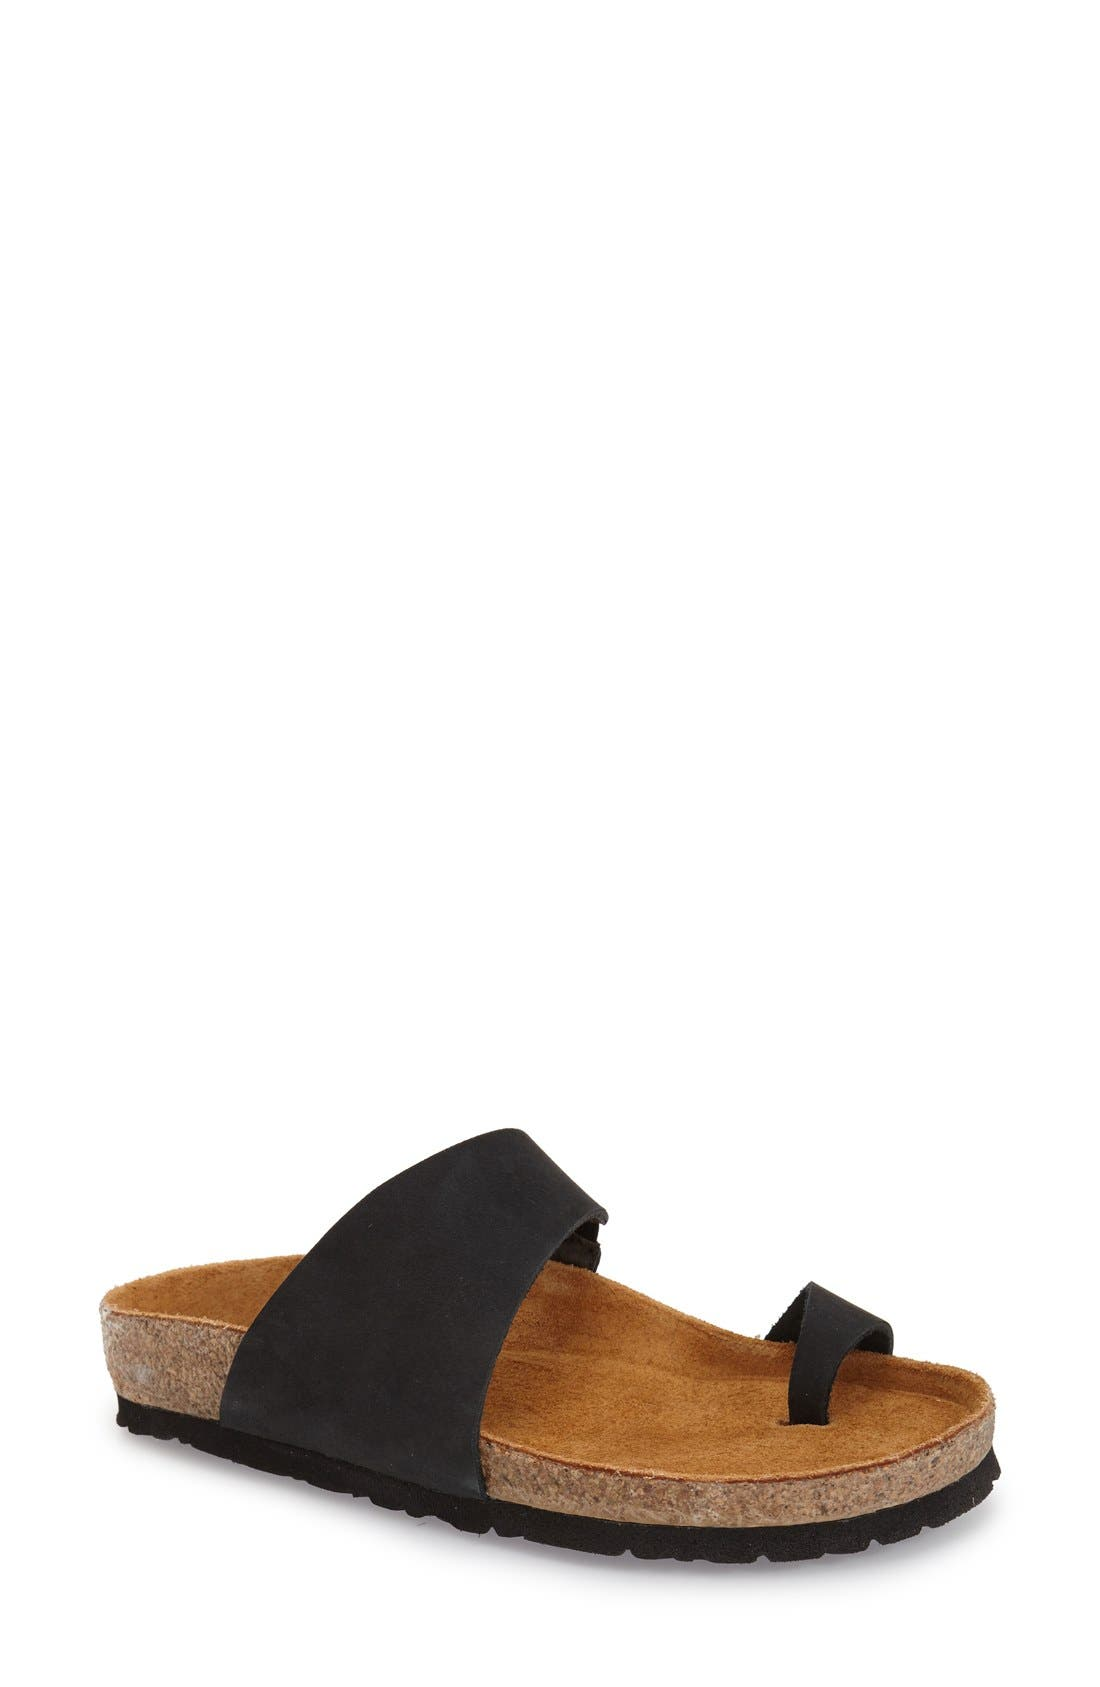 'Santa Fe' Sandal,                             Main thumbnail 1, color,                             Black Nubuck Leather